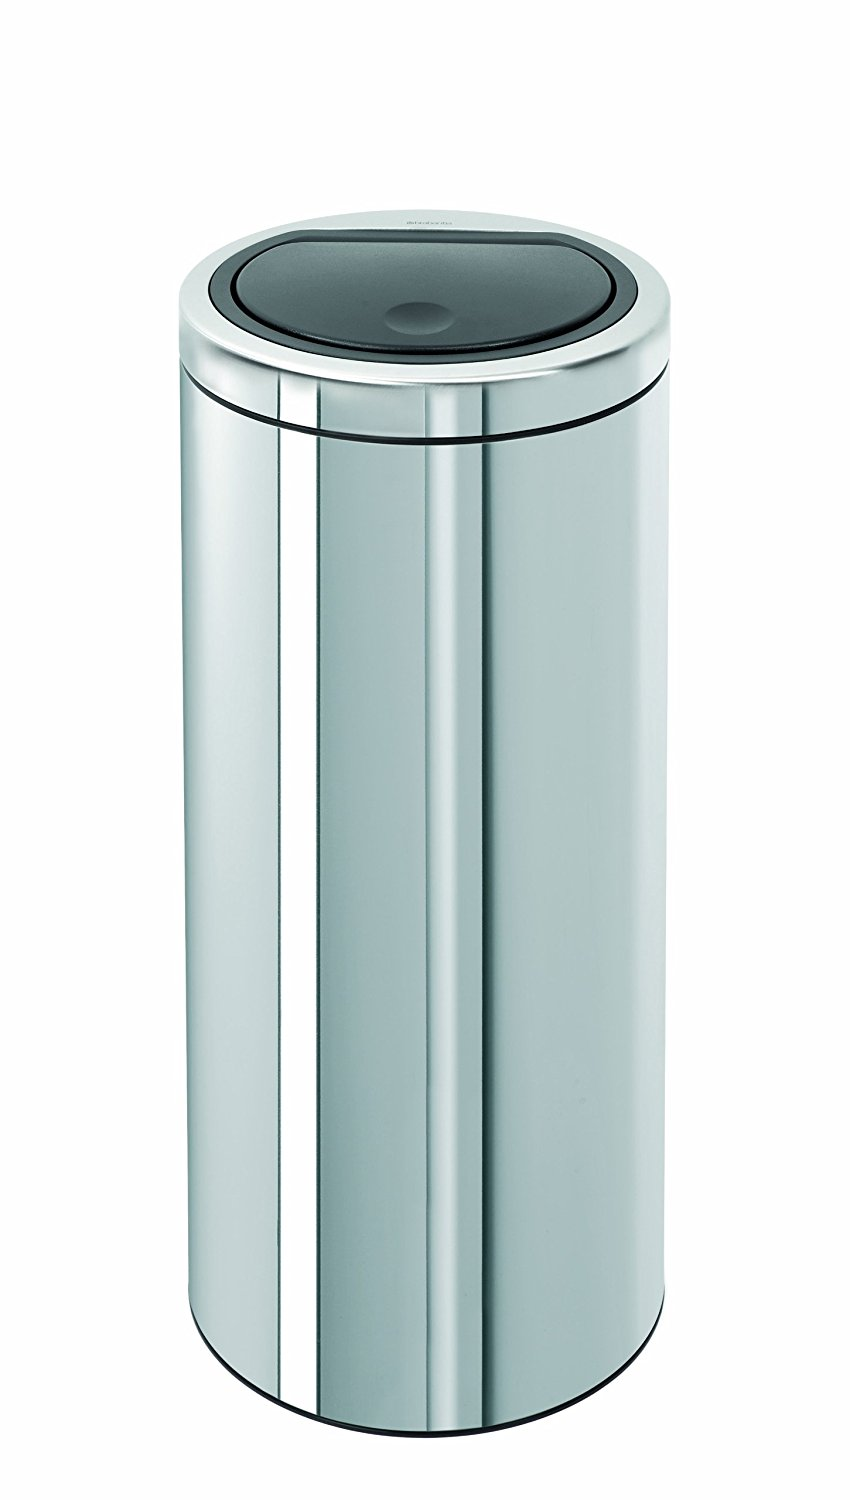 Cheap Brabantia Pedal Bin 30l, find Brabantia Pedal Bin 30l deals on ...